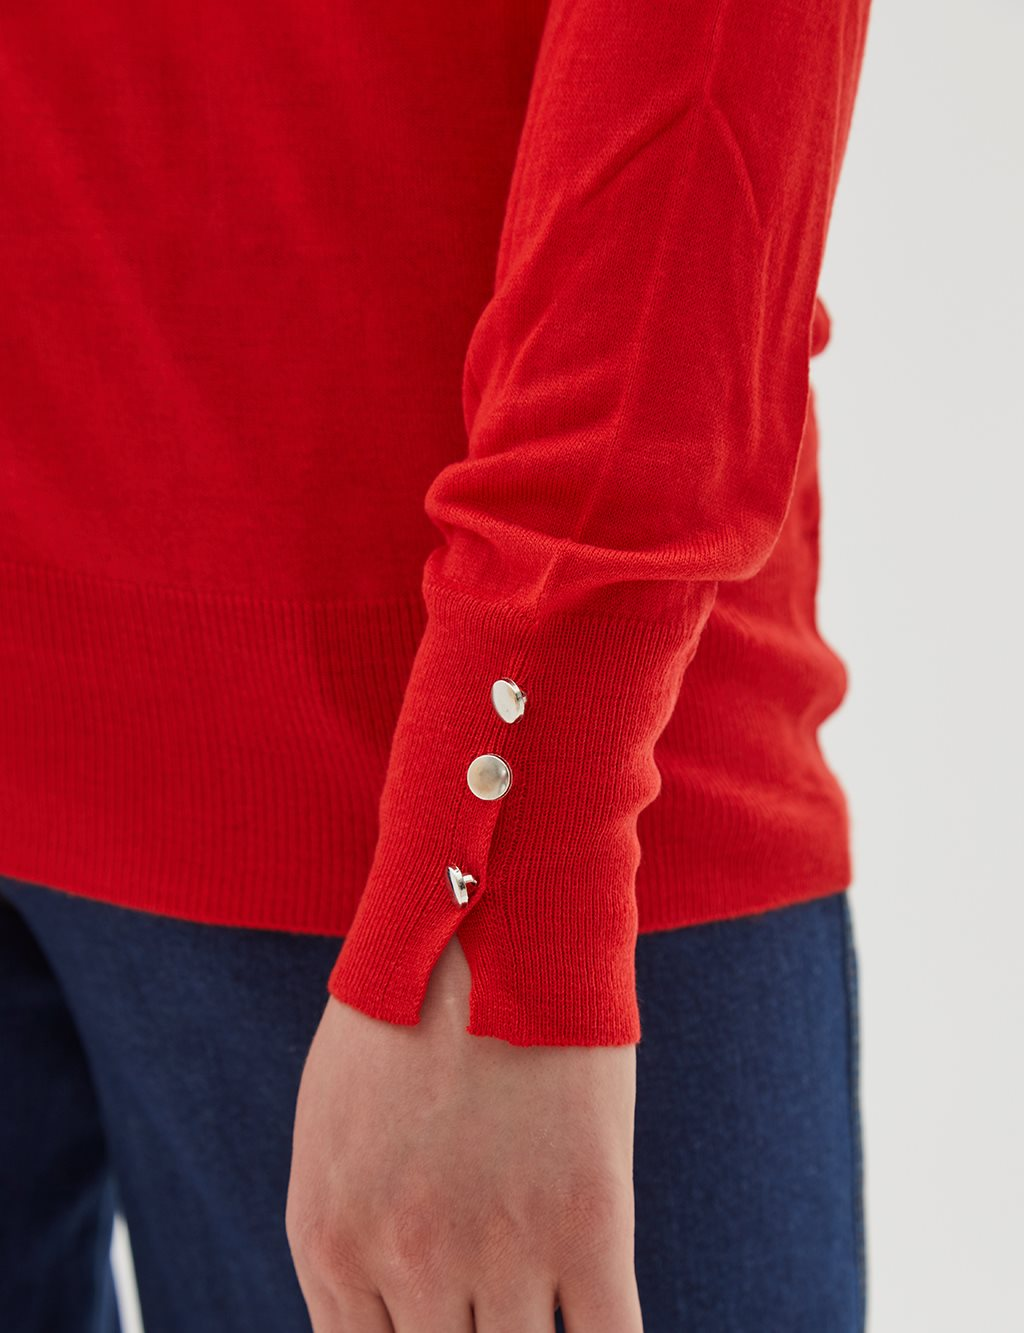 Button Detailed Knitwear Blouse B20 TRK05 Red